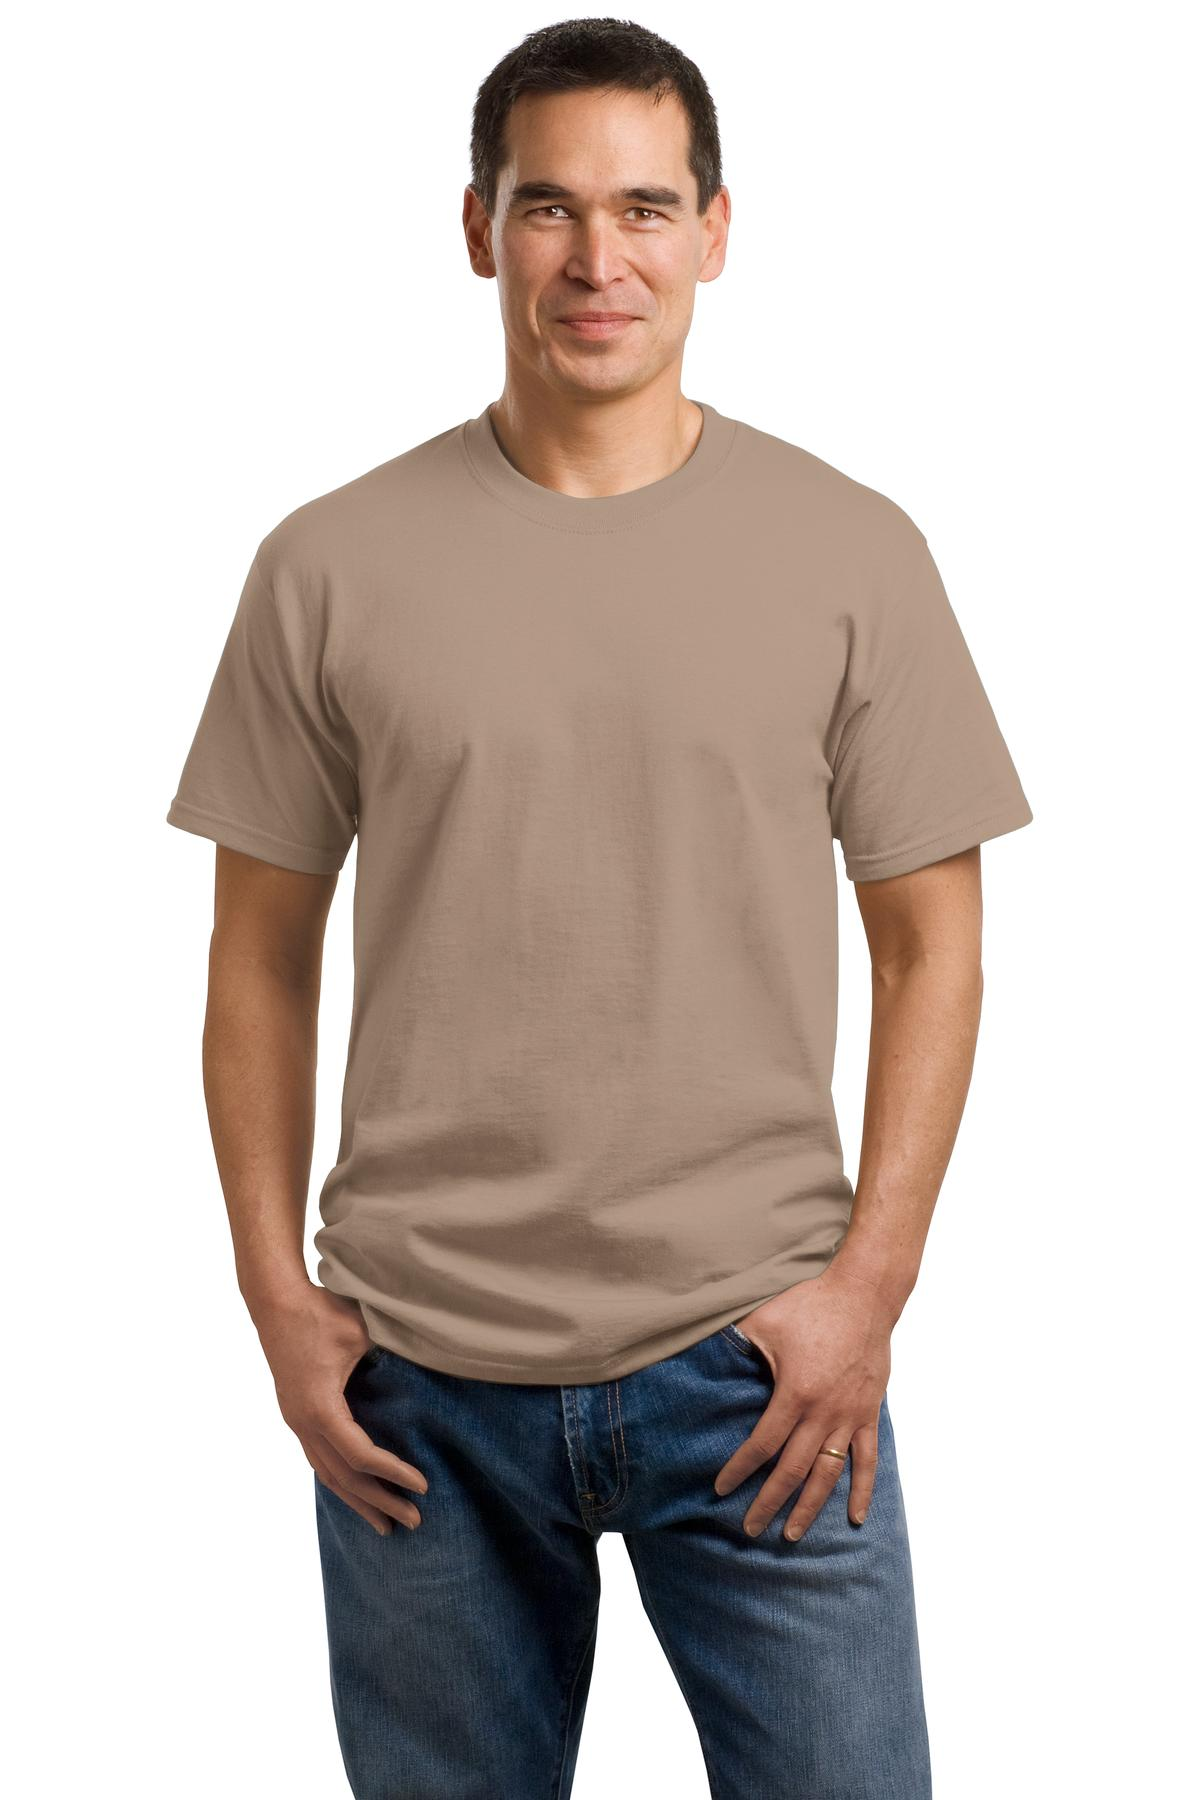 Port & Company Men's Athletic Classic Cotton T-Shirt